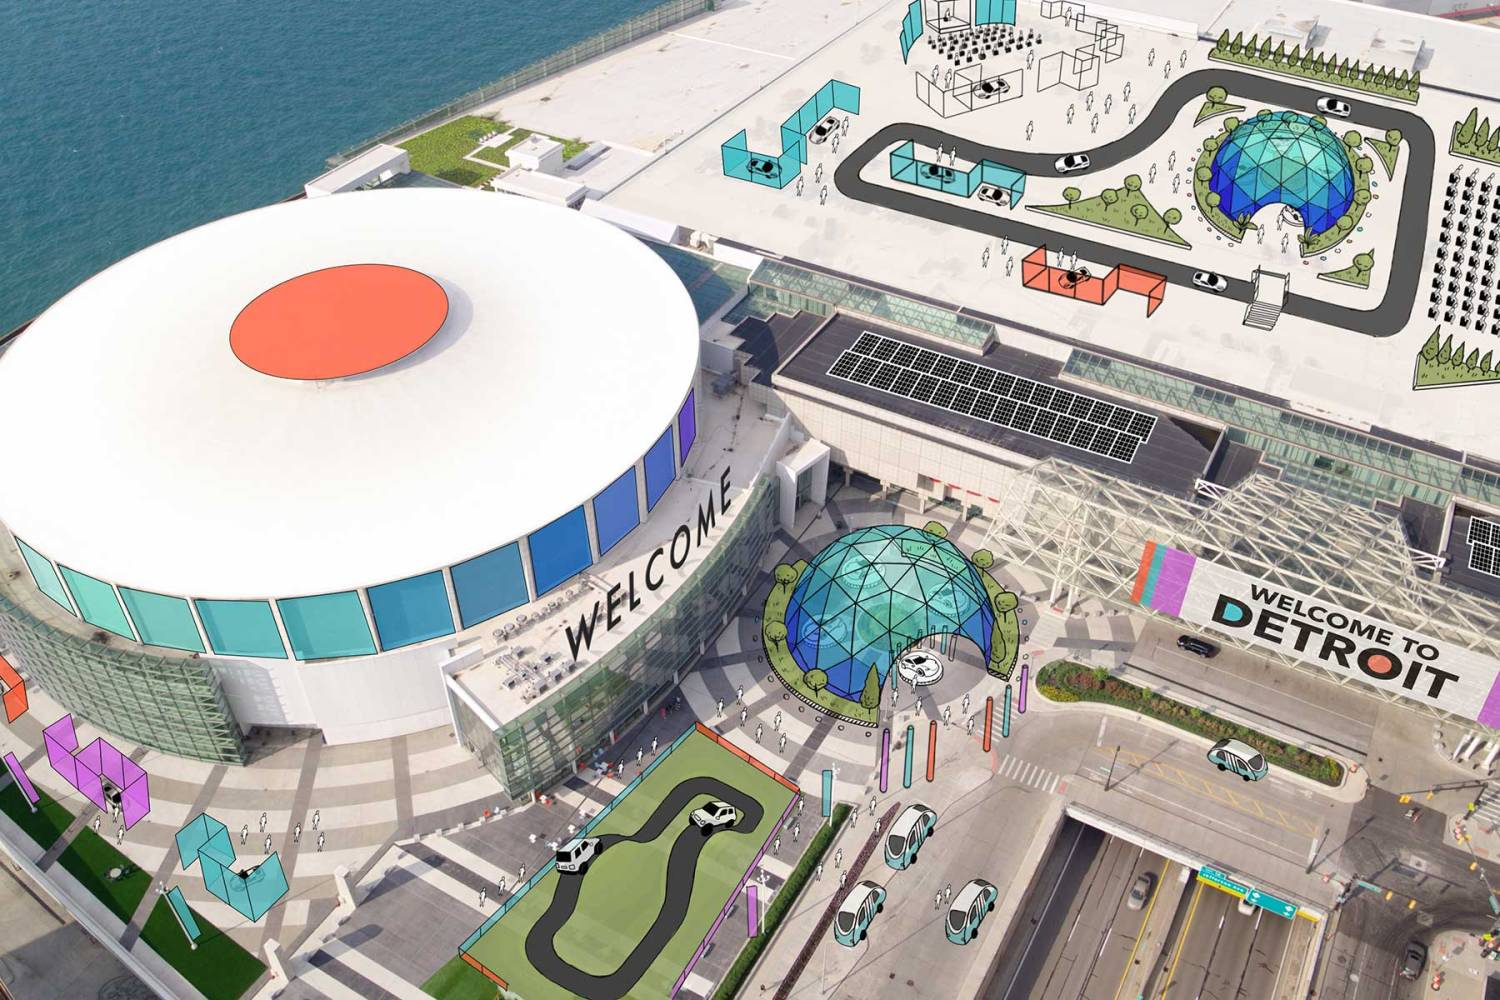 2020 Detroit Auto Show to move to June